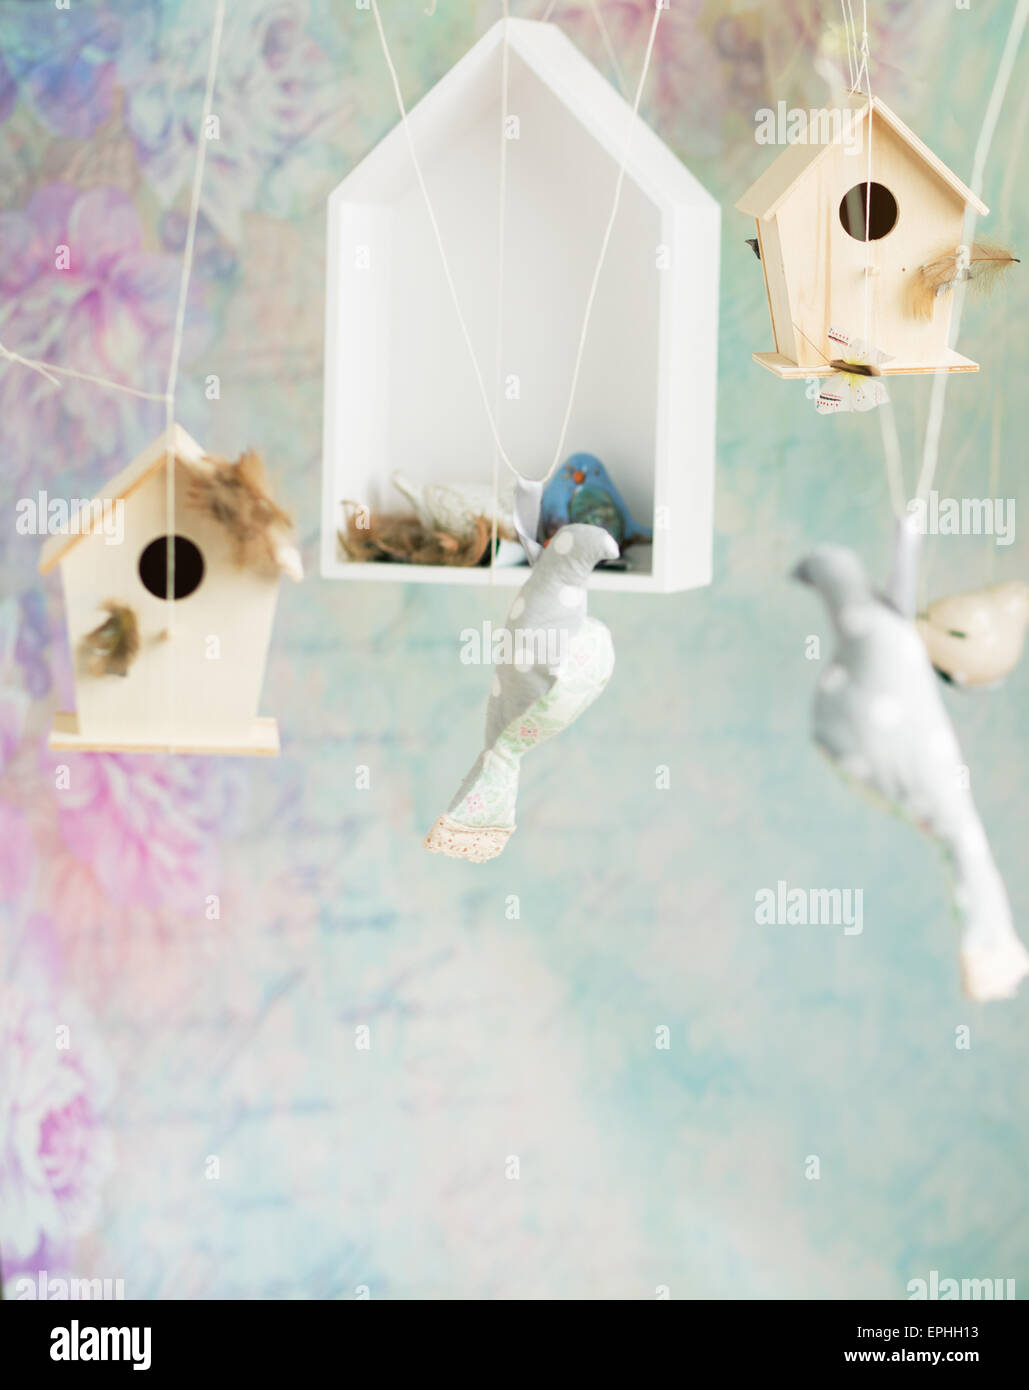 Vintage background with wooden toy birds - Stock Image